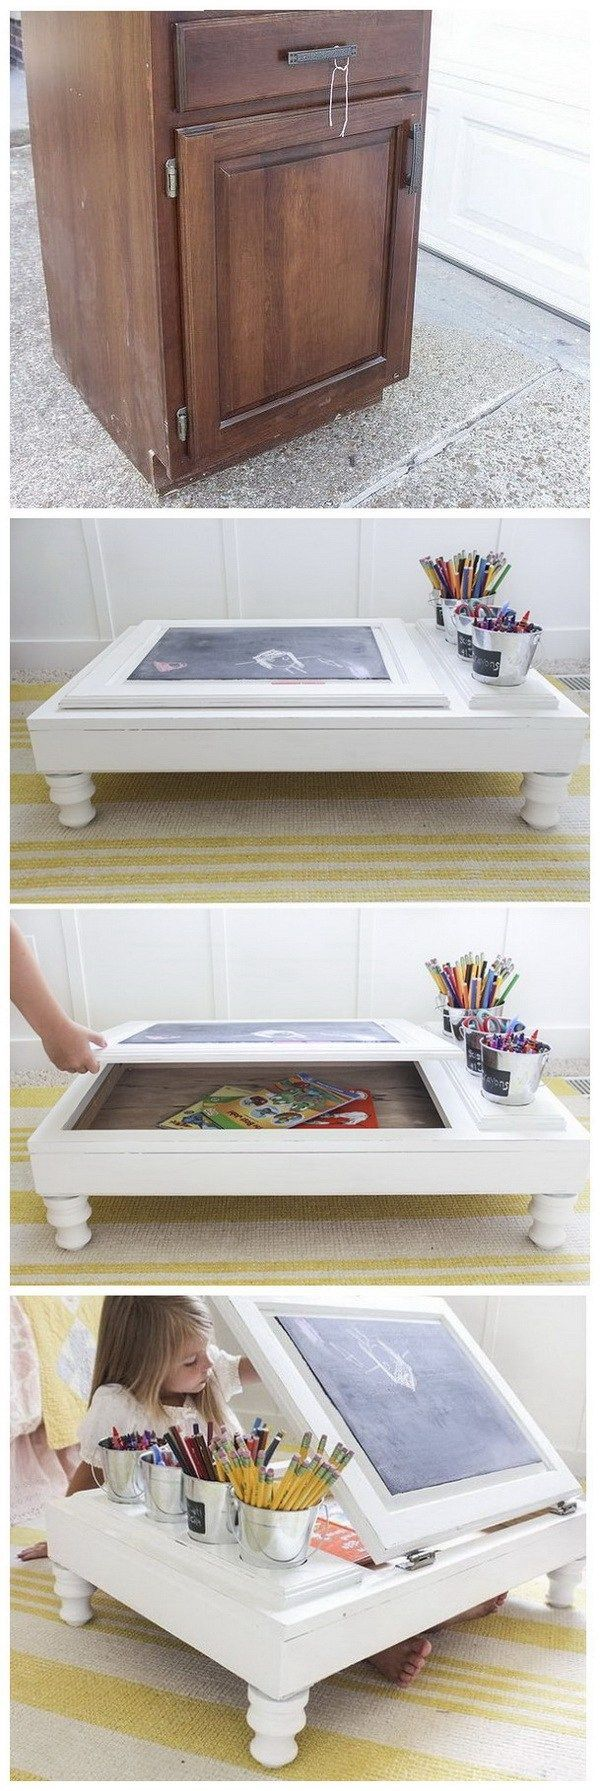 The 25+ best Portable desk ideas on Pinterest | Cardboard boxes ...